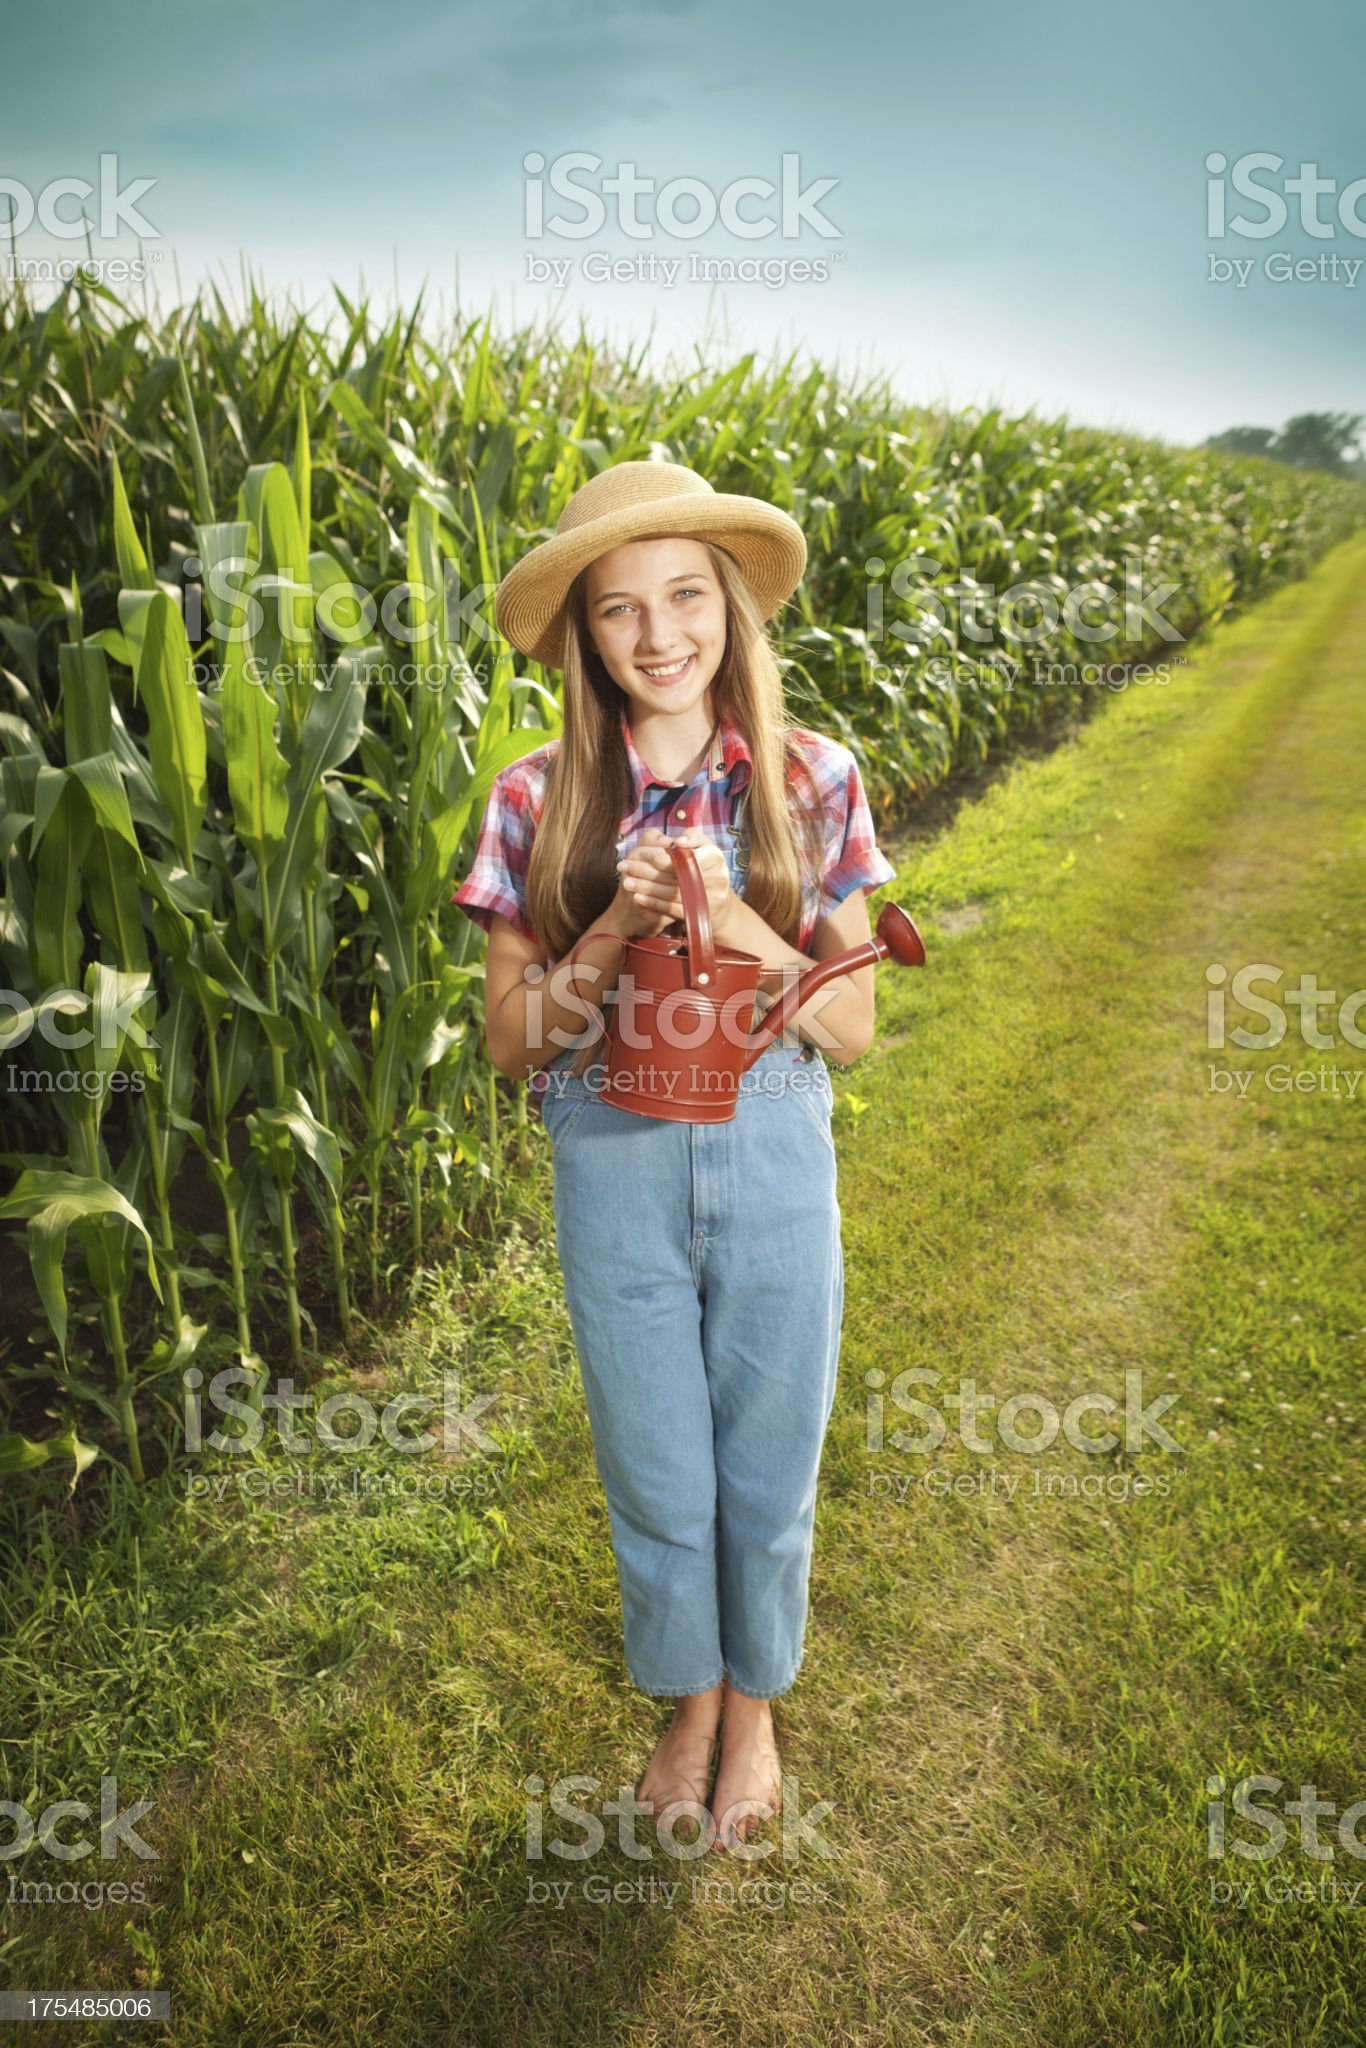 http://media.istockphoto.com/photos/young-farmer-girl-holding-watering-can-by-the-field-picture-id175485006?s=2048x2048